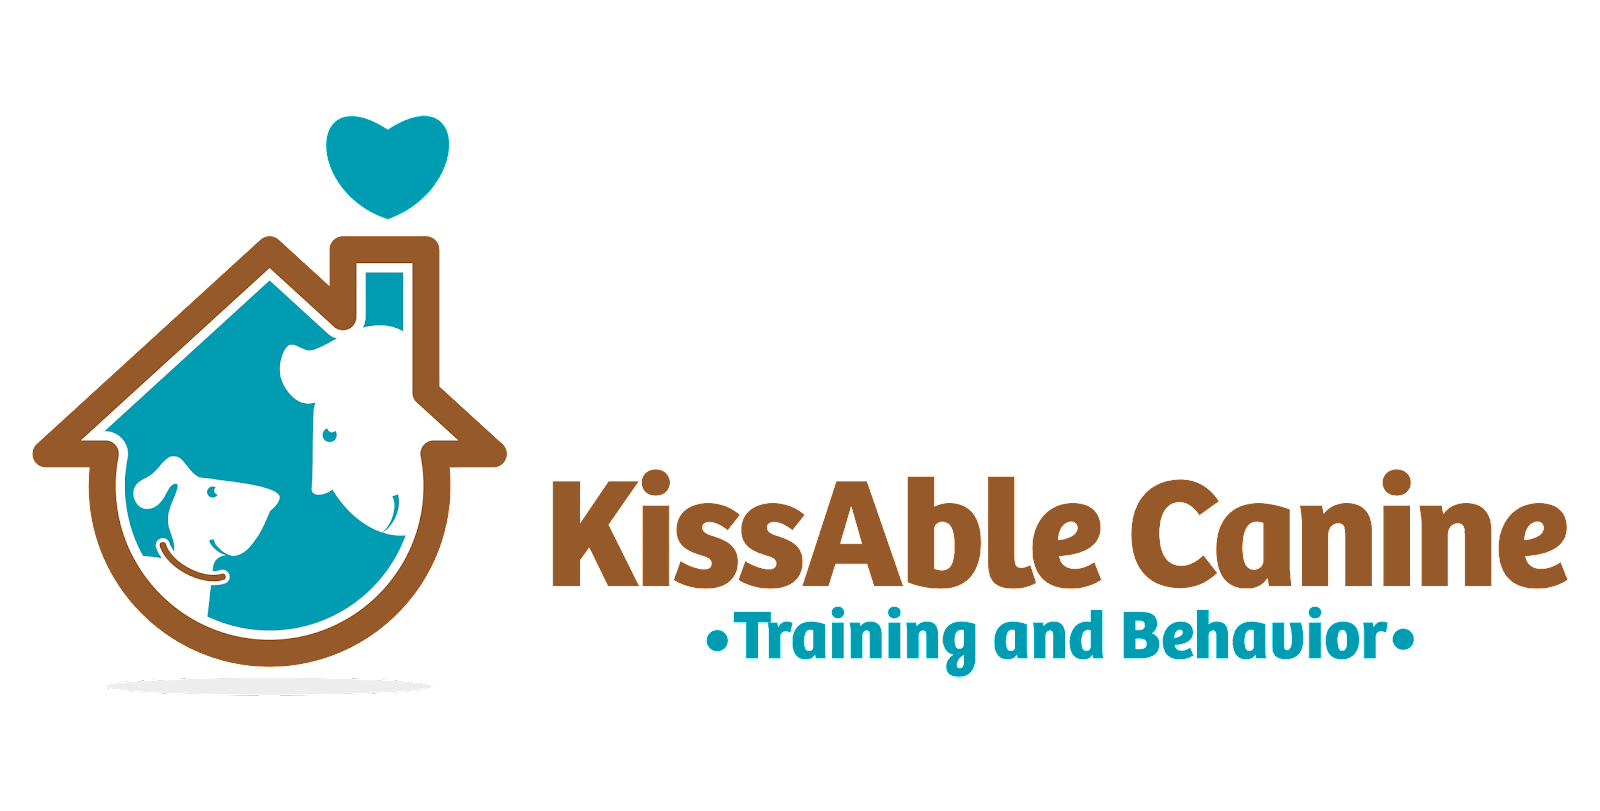 KissAble Canine Logo 2-01.png